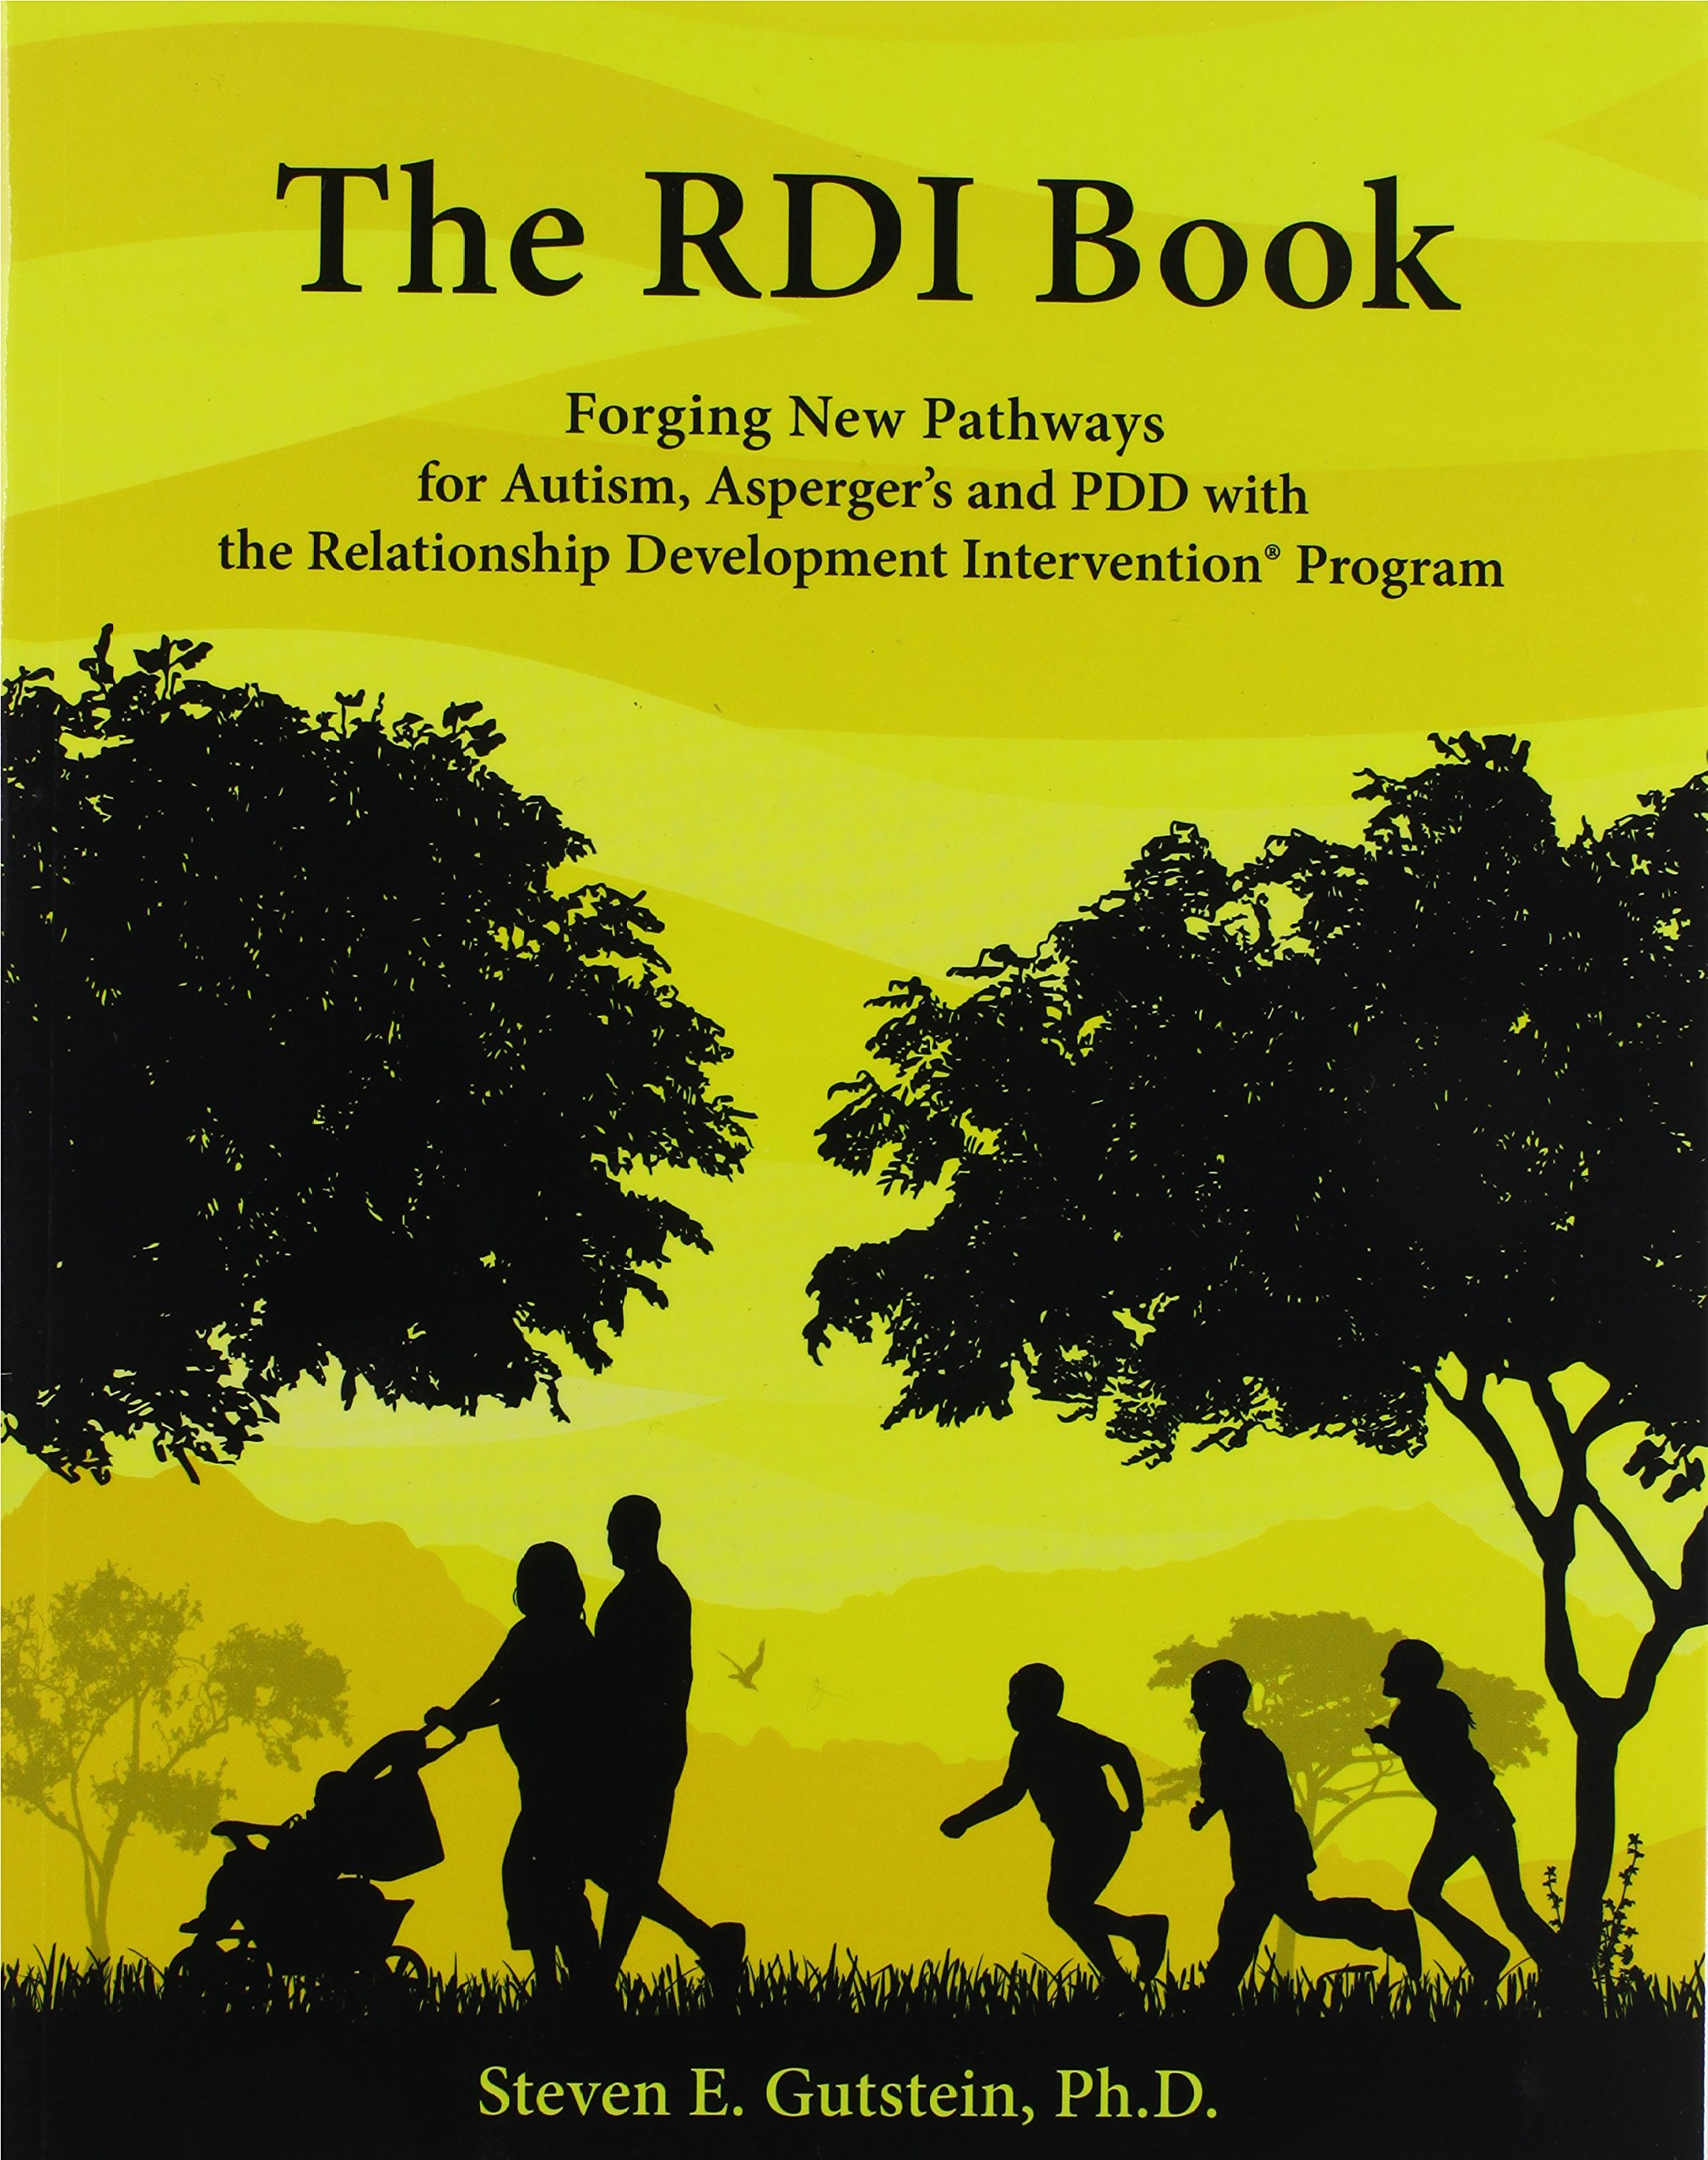 The RDI Book: Forging New Pathways for Autism, Asperger's